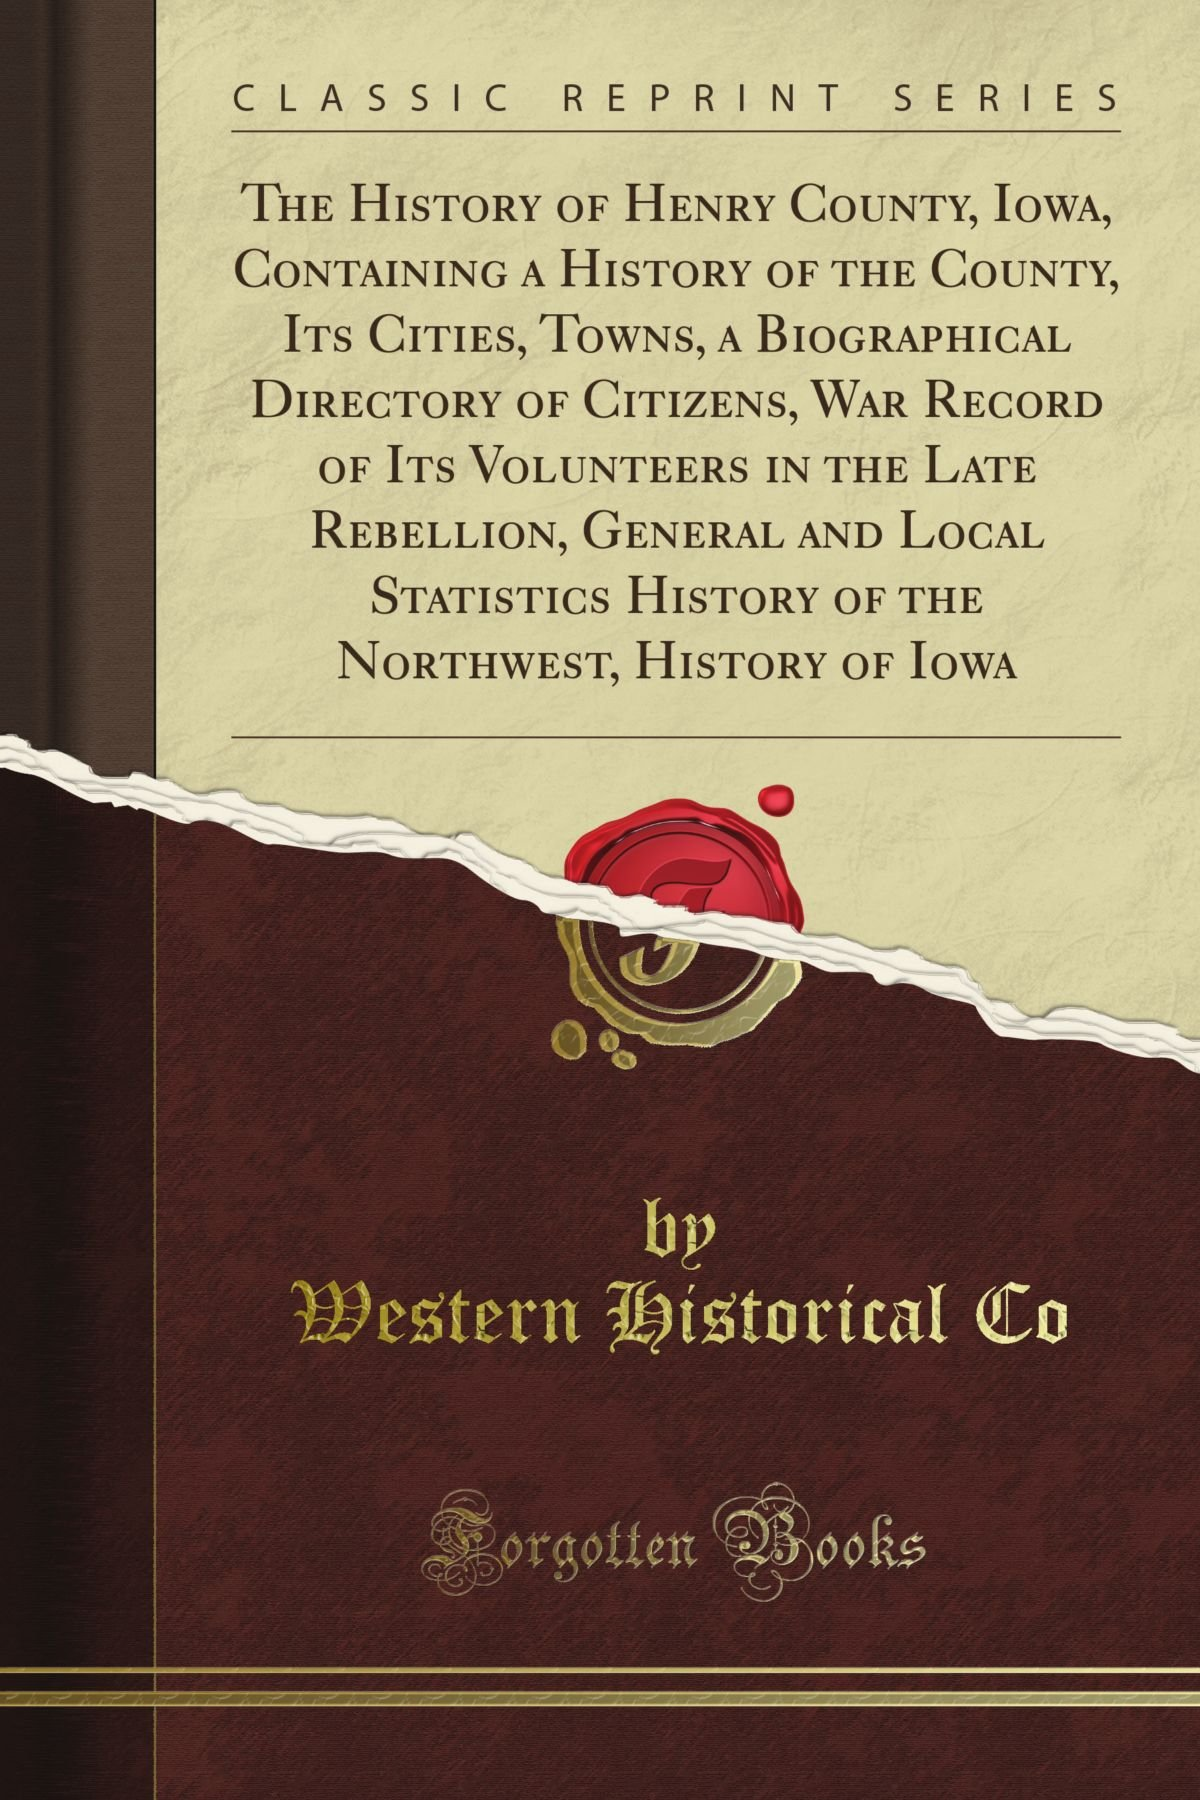 Read Online The History of Henry County, Iowa, Containing a History of the County, Its Cities, Towns, a Biographical Directory of Citizens, War Record of Its ... History of the Northwest, History of Iowa PDF